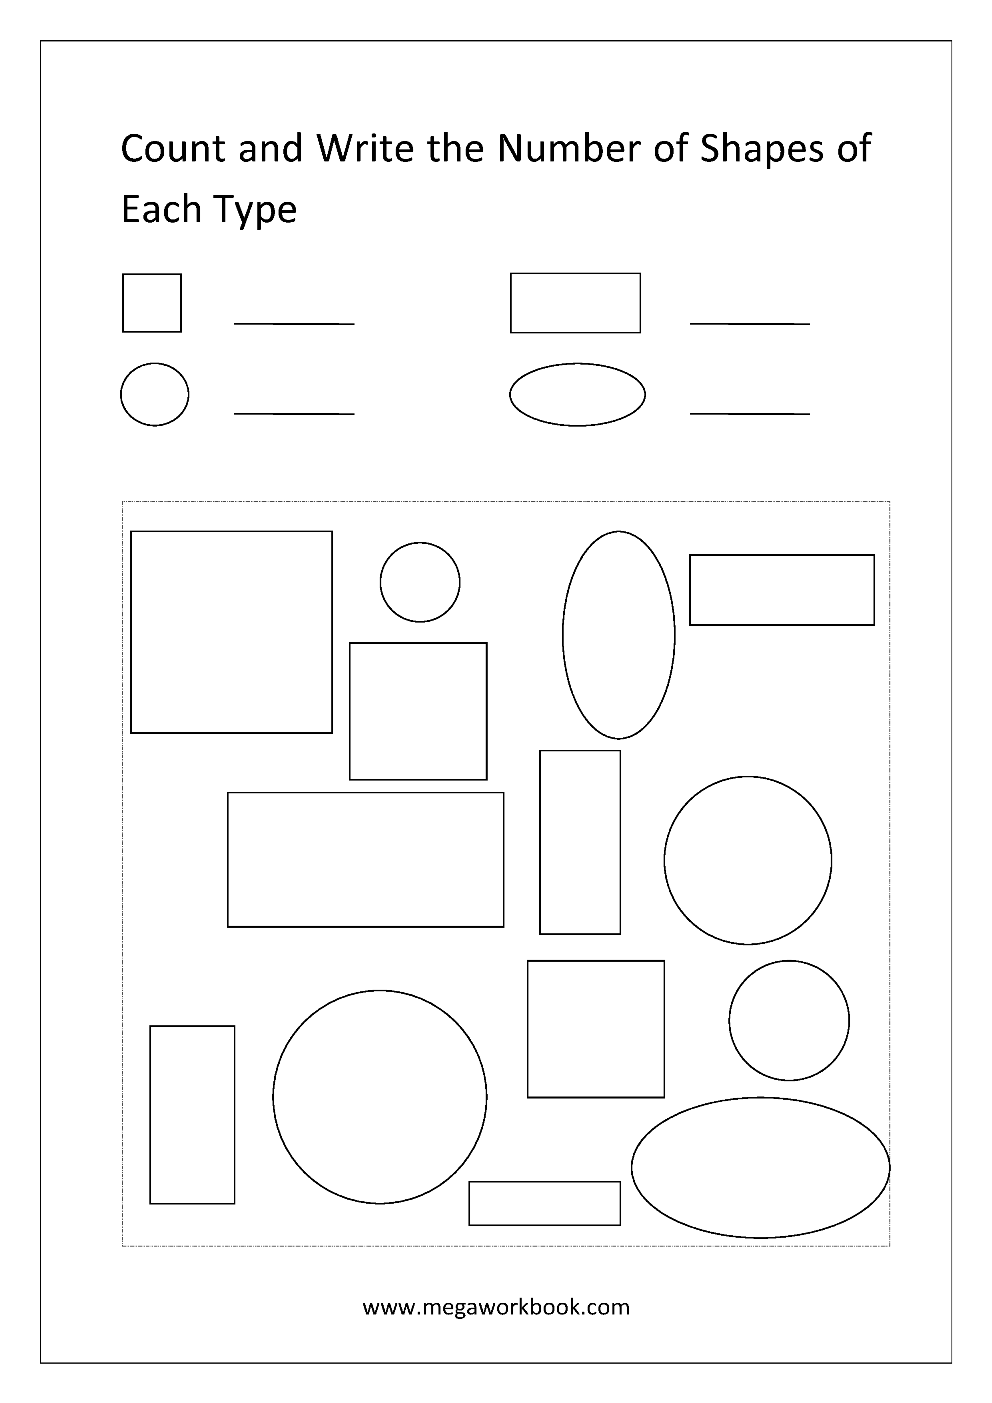 free printable shapes worksheets for preschool kindergarten counting the shapes identifying. Black Bedroom Furniture Sets. Home Design Ideas